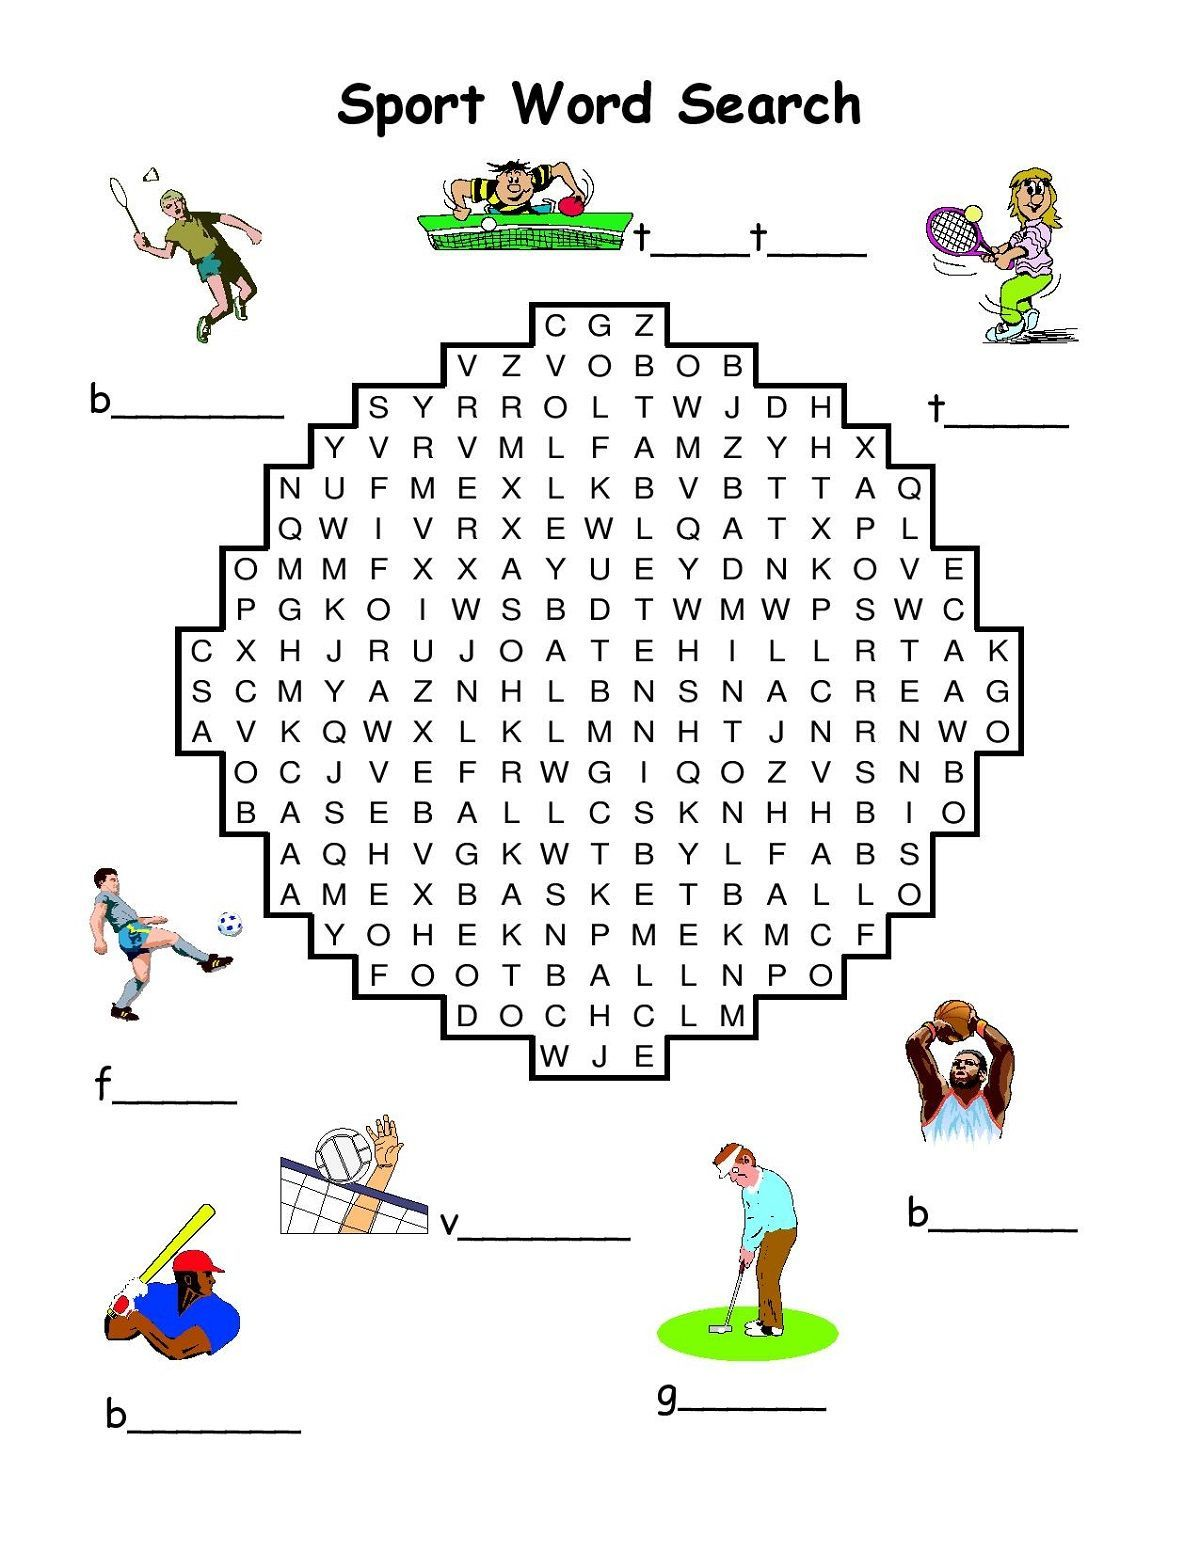 Sports Word Searches Template Sports Coloring Pages Printable Sports Worksheets For Kids